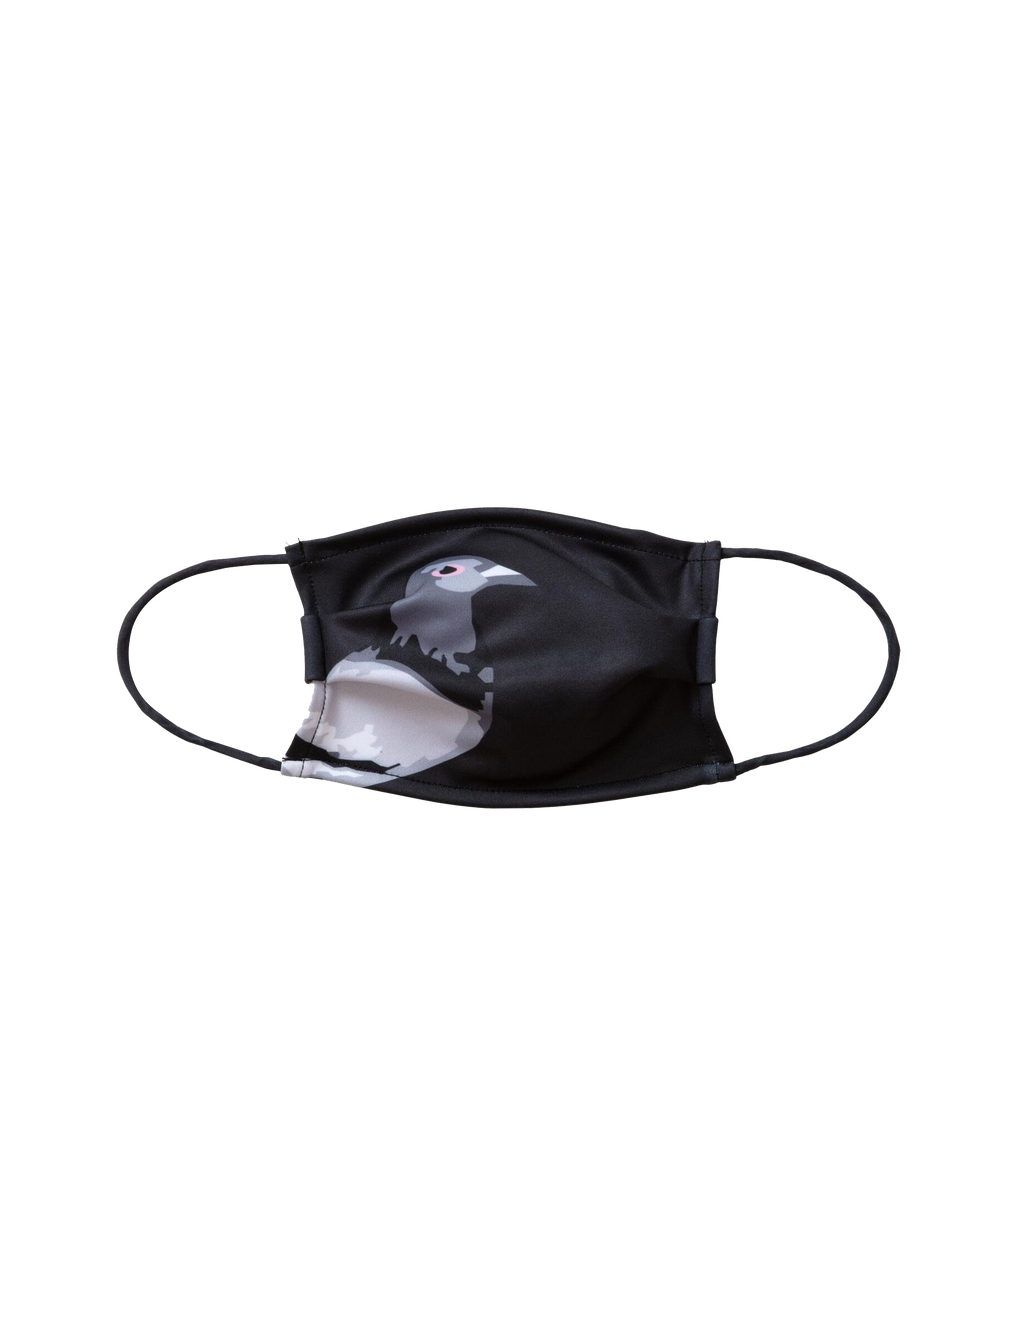 Pigeon Facemask - Mask | Staple Pigeon